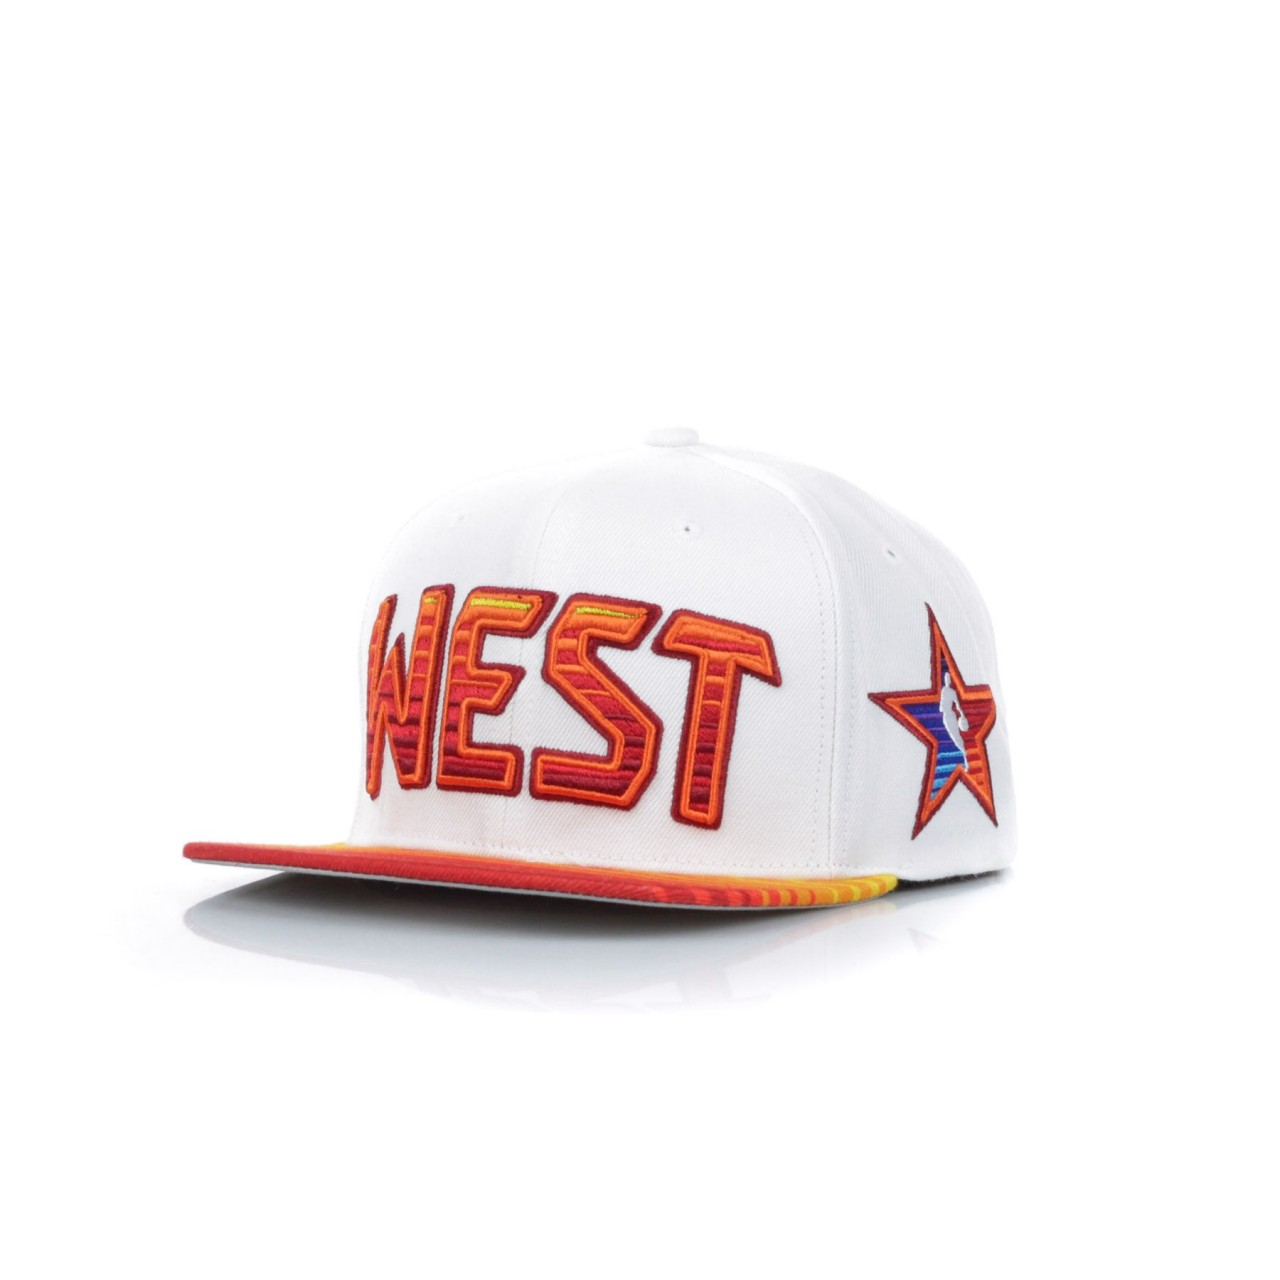 MITCHELL & NESS NBA ALL STAR 1991 NO.32 SHAQUILLE O'NEAL ALL STAR GAME WEST SUNSET SNAPBACK 6HSSDX18010-ASWWHITSON